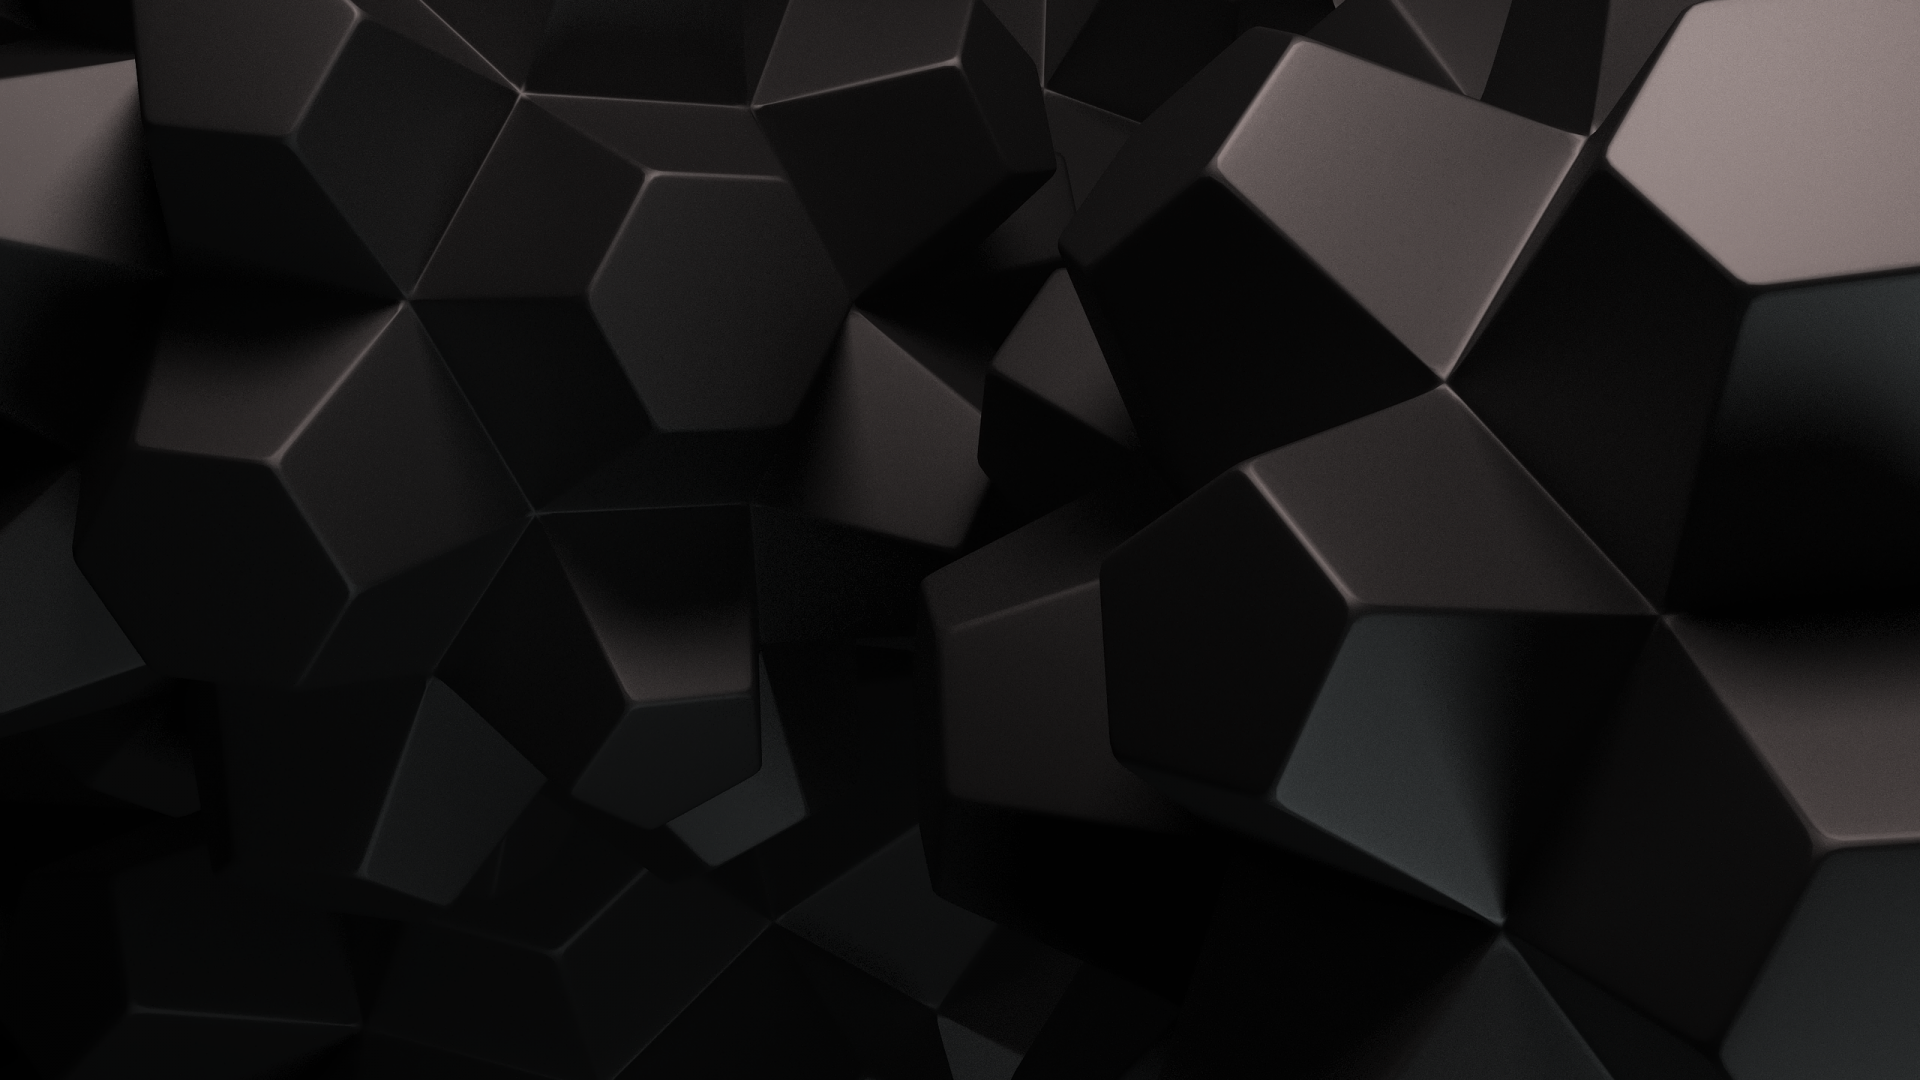 Geometric Black Background Black Background Wallpaper Black Hd Wallpaper Black Wallpaper